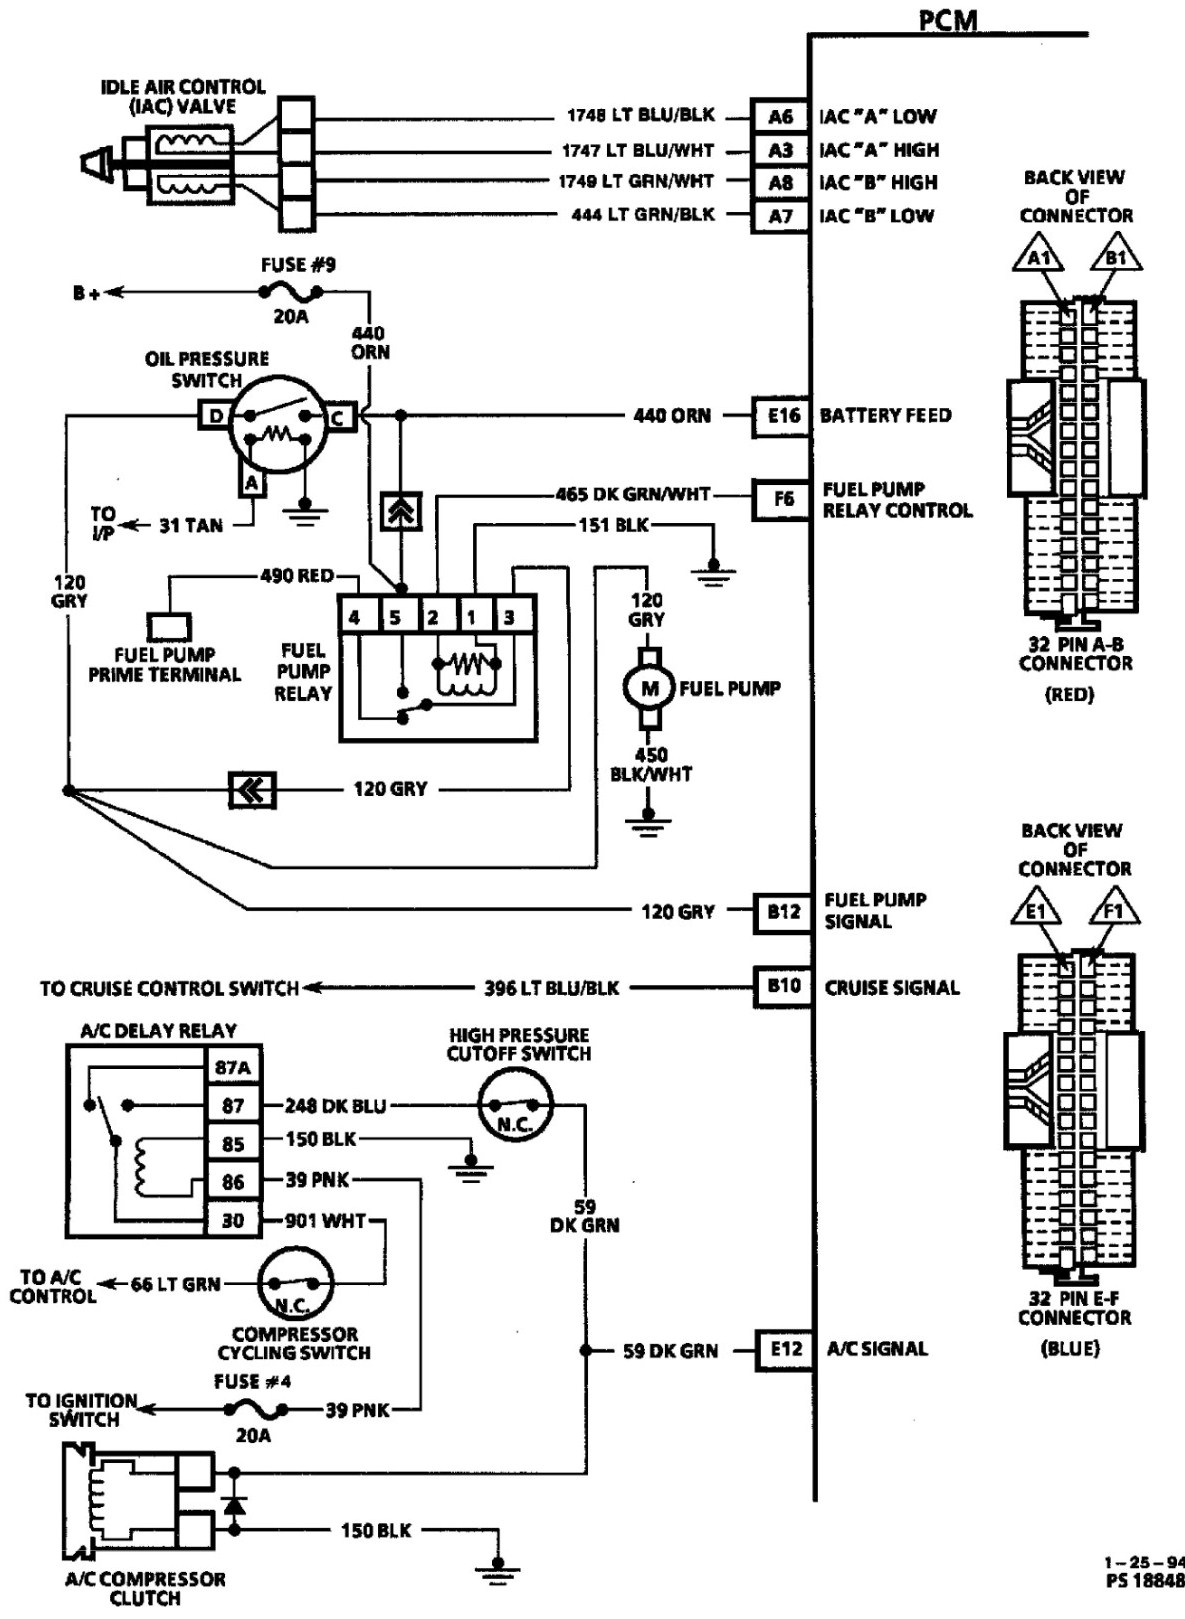 95 s10 wiring diagram get free image about wiring diagram 1998 chevy s10 fuel pump wiring diagram 1998 chevy s10 fuel pump wiring diagram